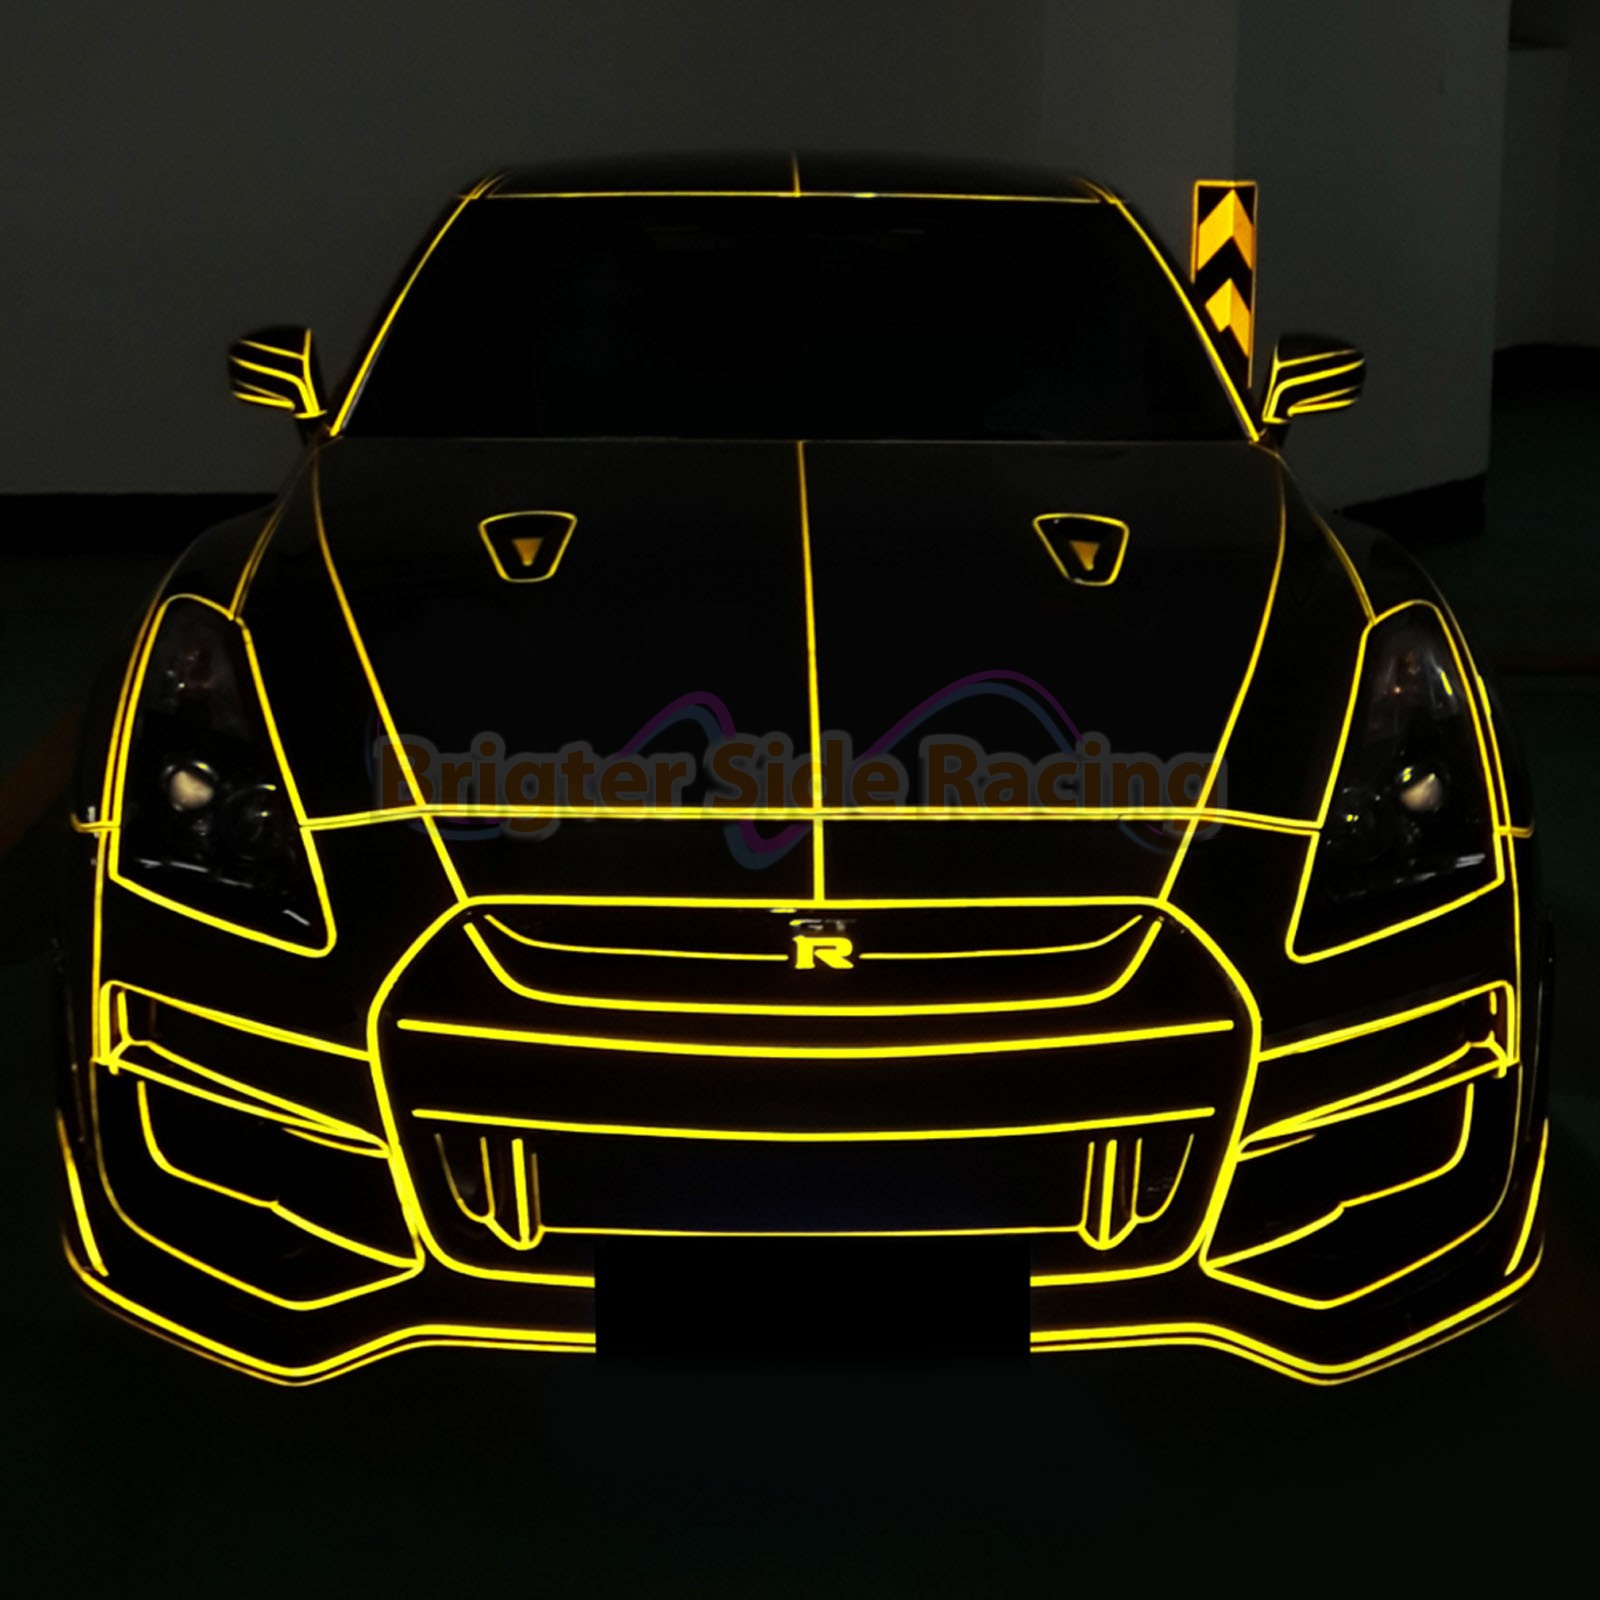 FOR JPN CARS ONLY JDM STYLE YELLOW SELF-ADHESIVE REFLECTIVE TAPE 1CMX45M ROLL